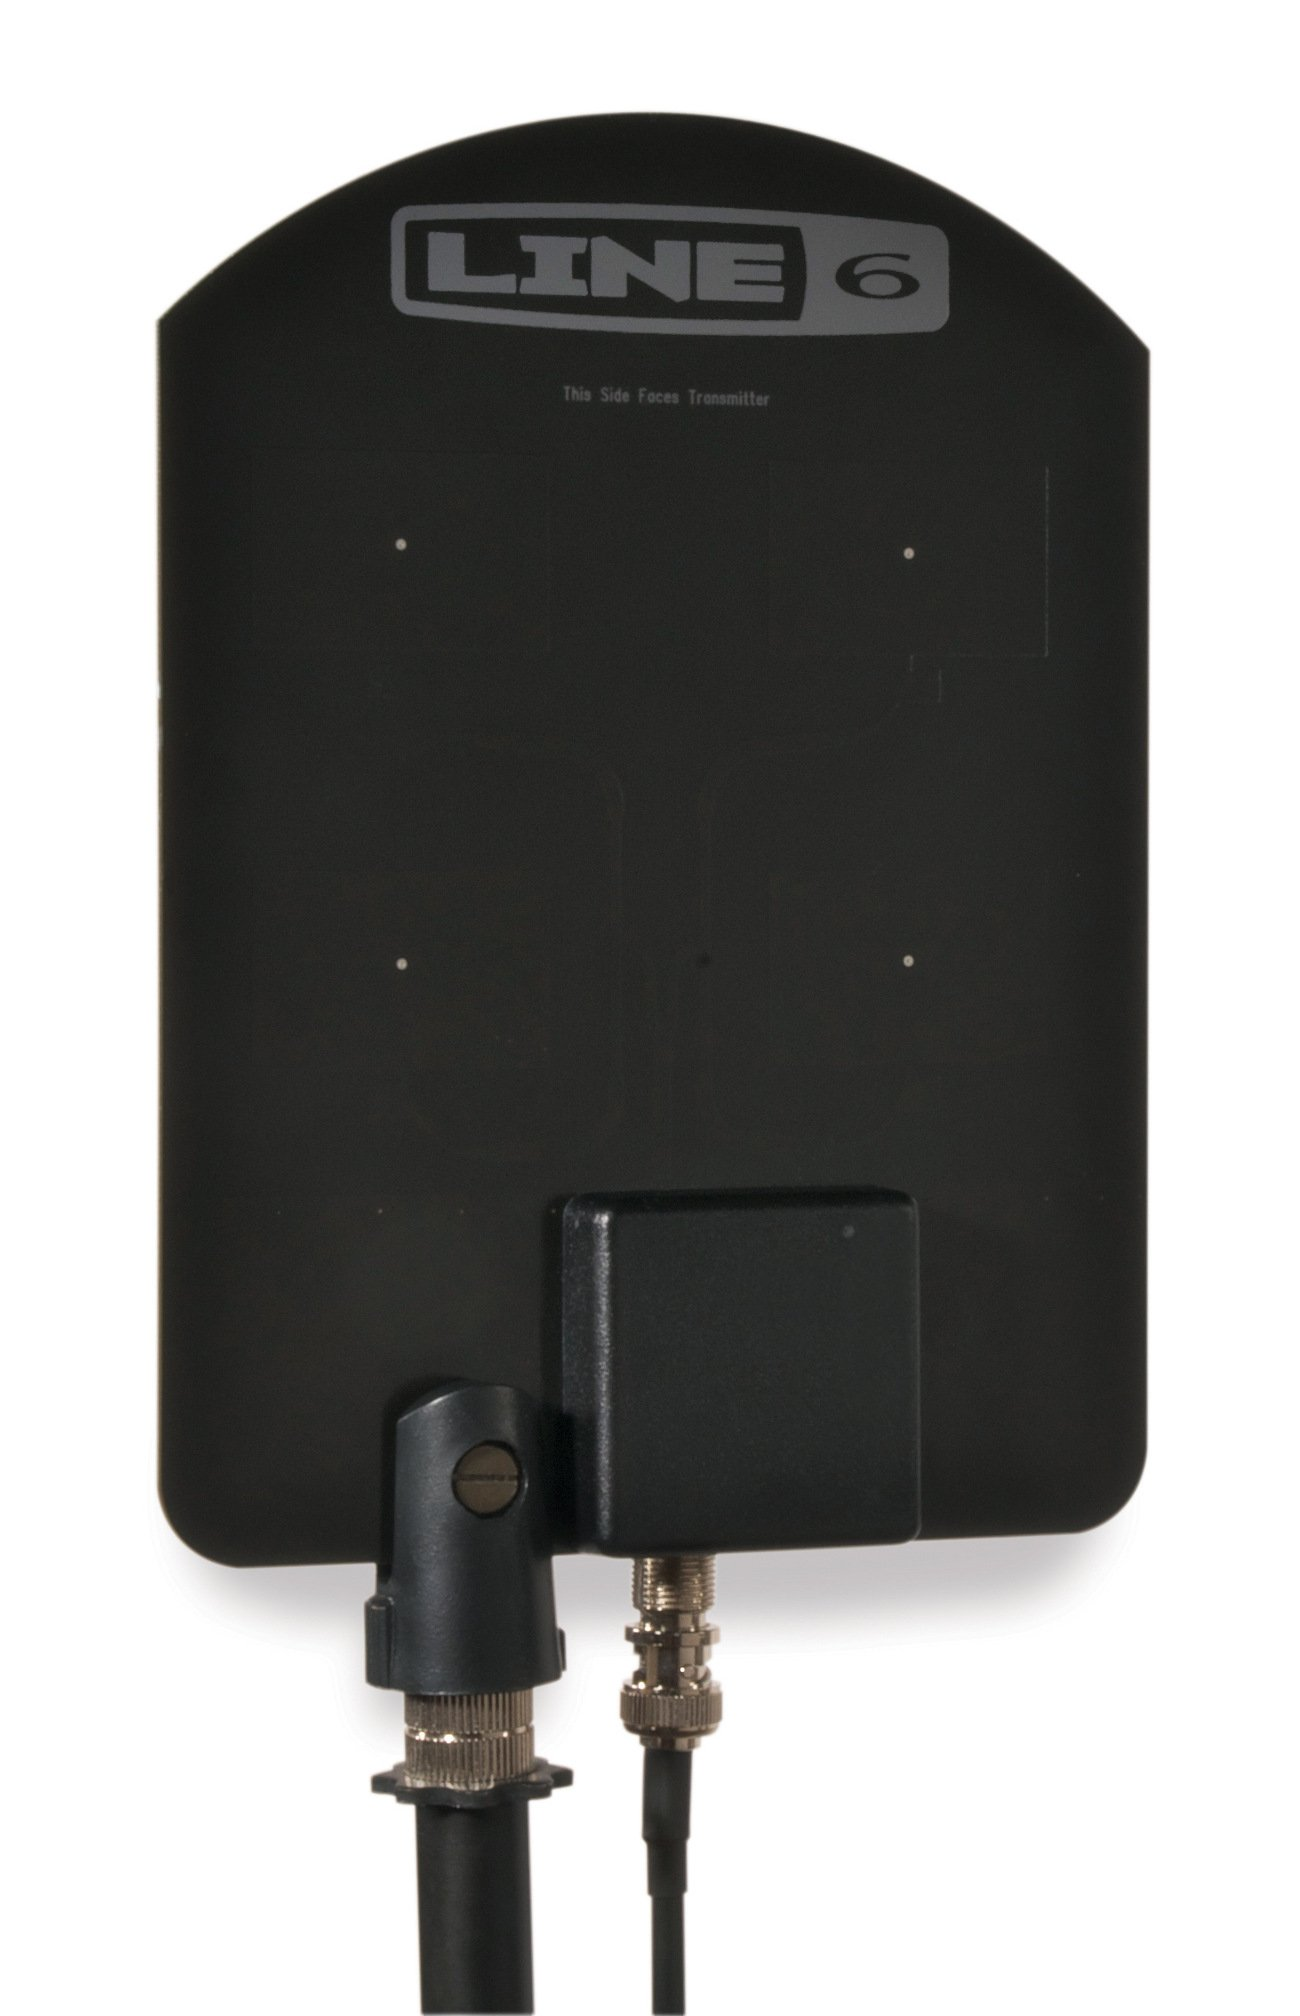 Line 6 P180 Directional Active Antenna Pair P180